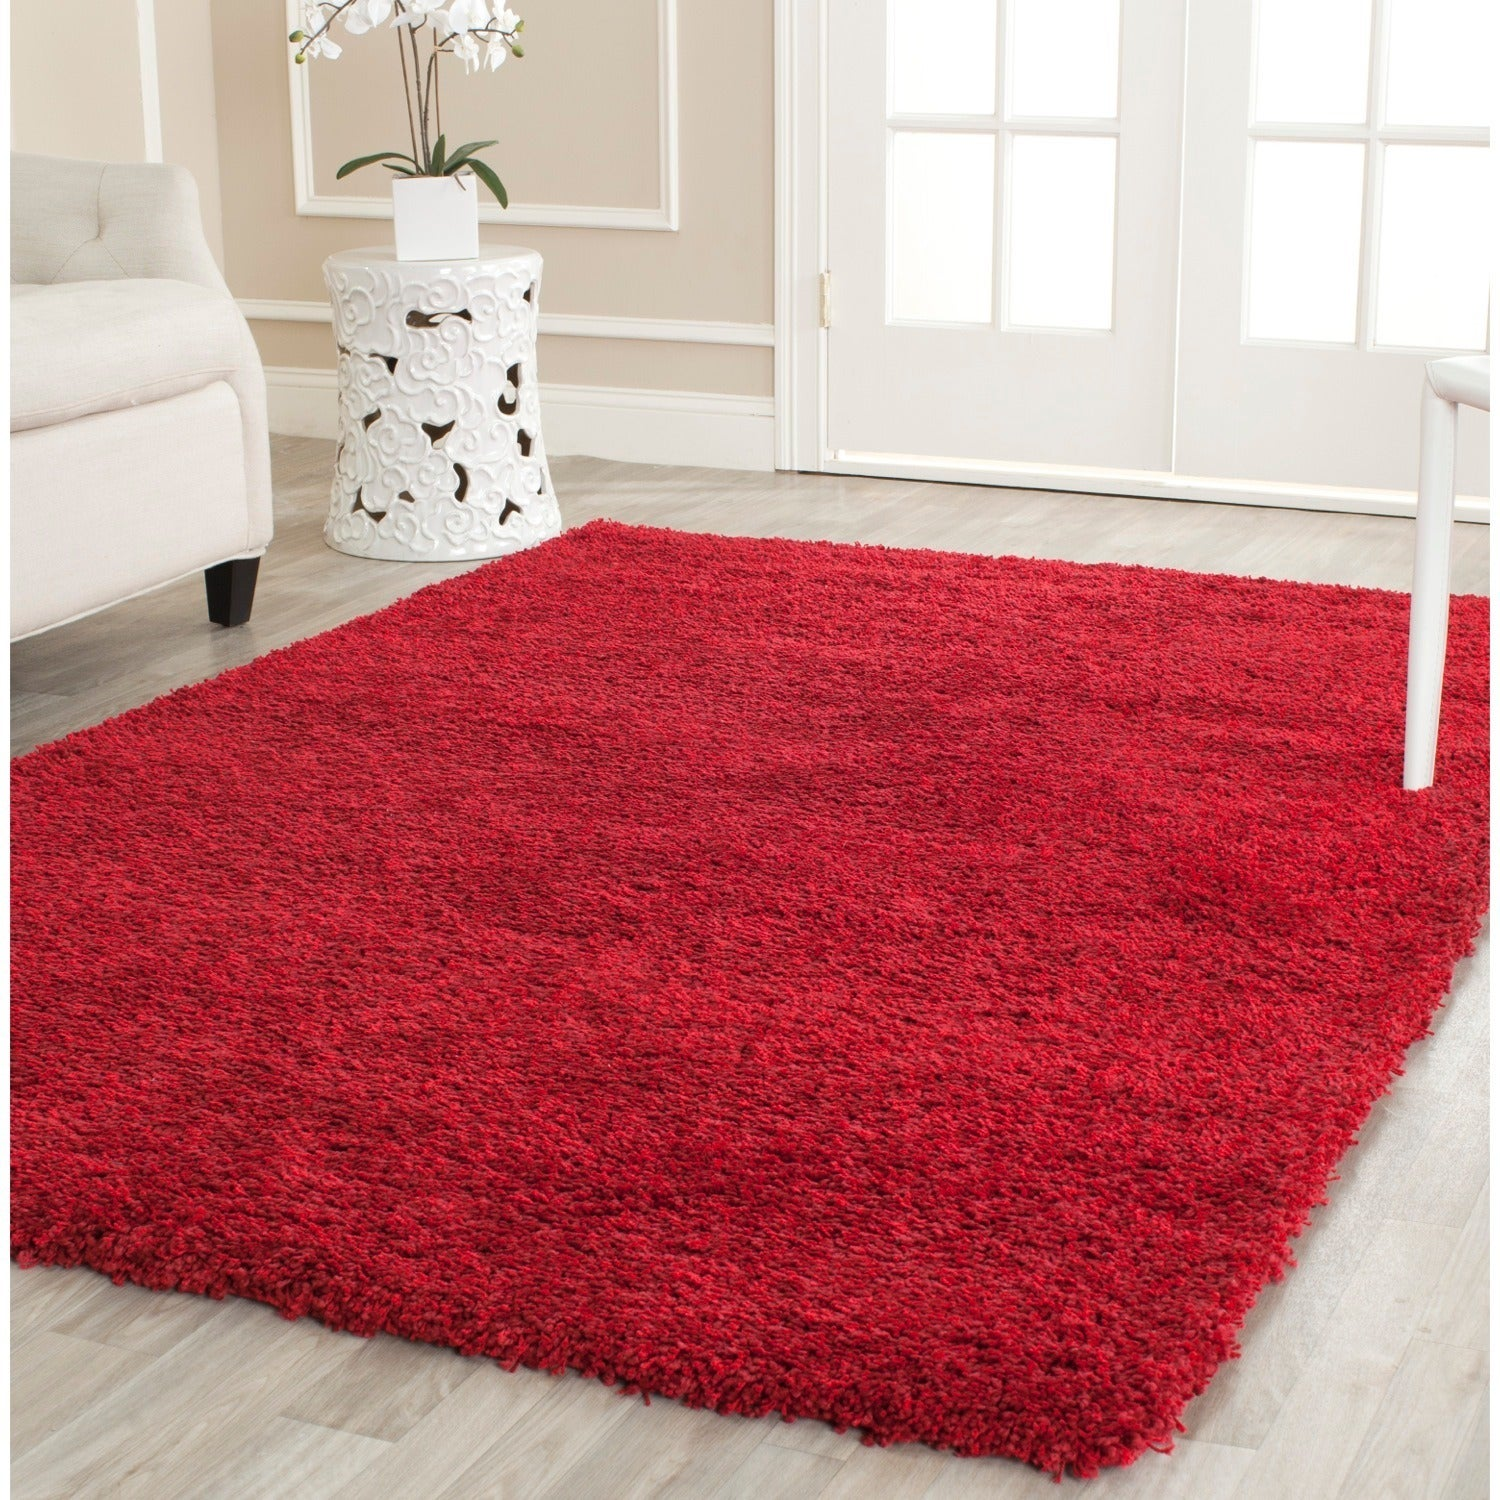 Well-liked Safavieh California Cozy Plush Red Shag Rug - 5'3' x 7'6' - Free  JC45